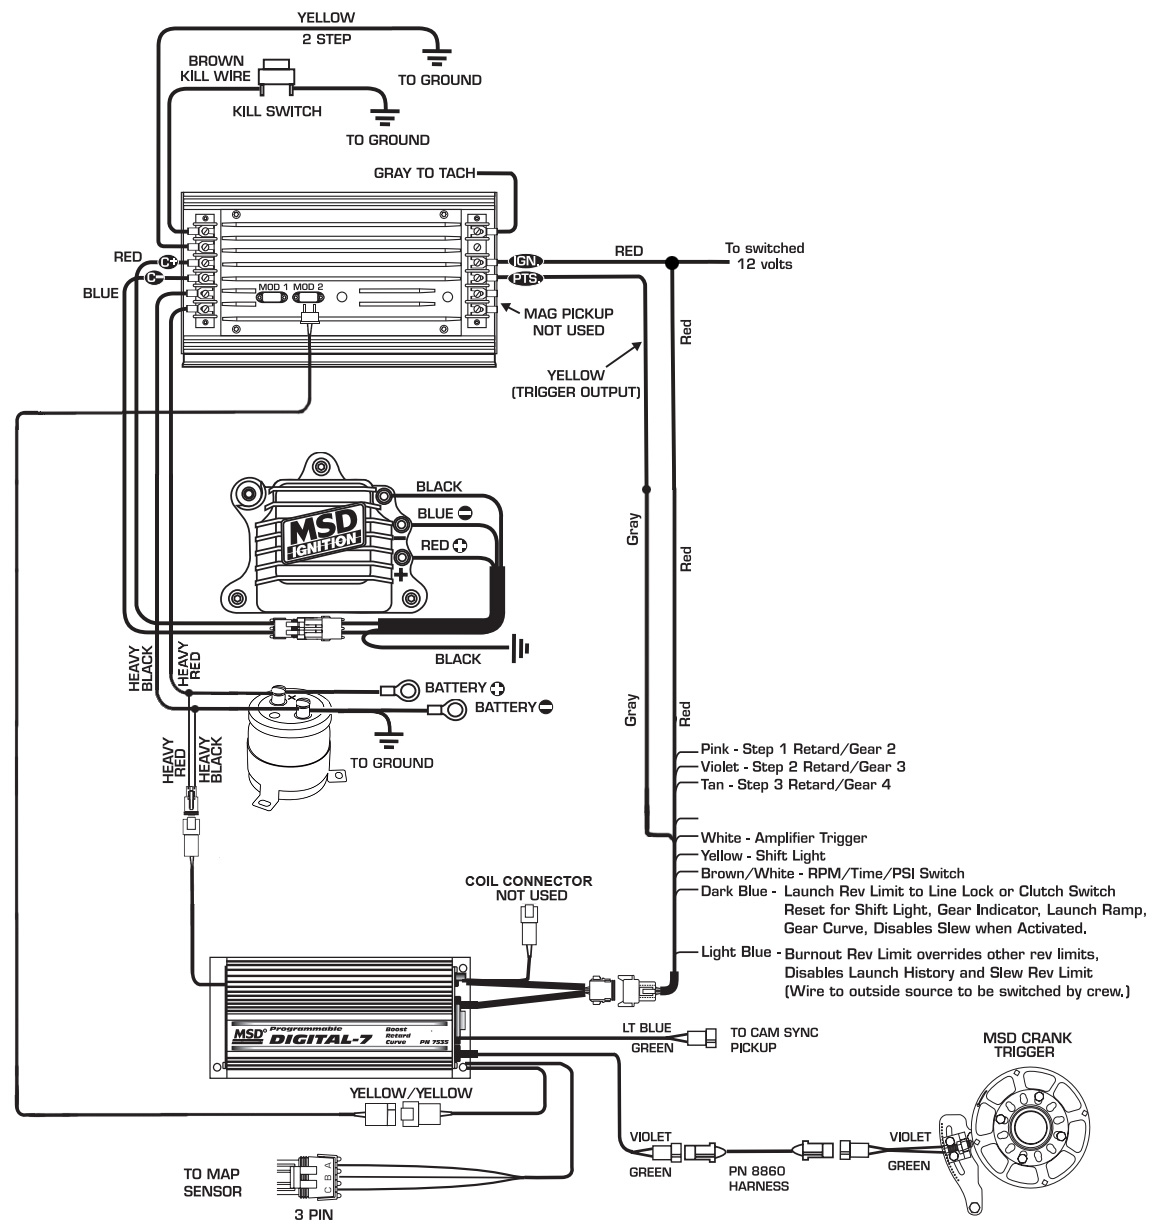 hight resolution of msd dis 4 wiring diagram wiring diagrams the msd dis 4 wiring diagram